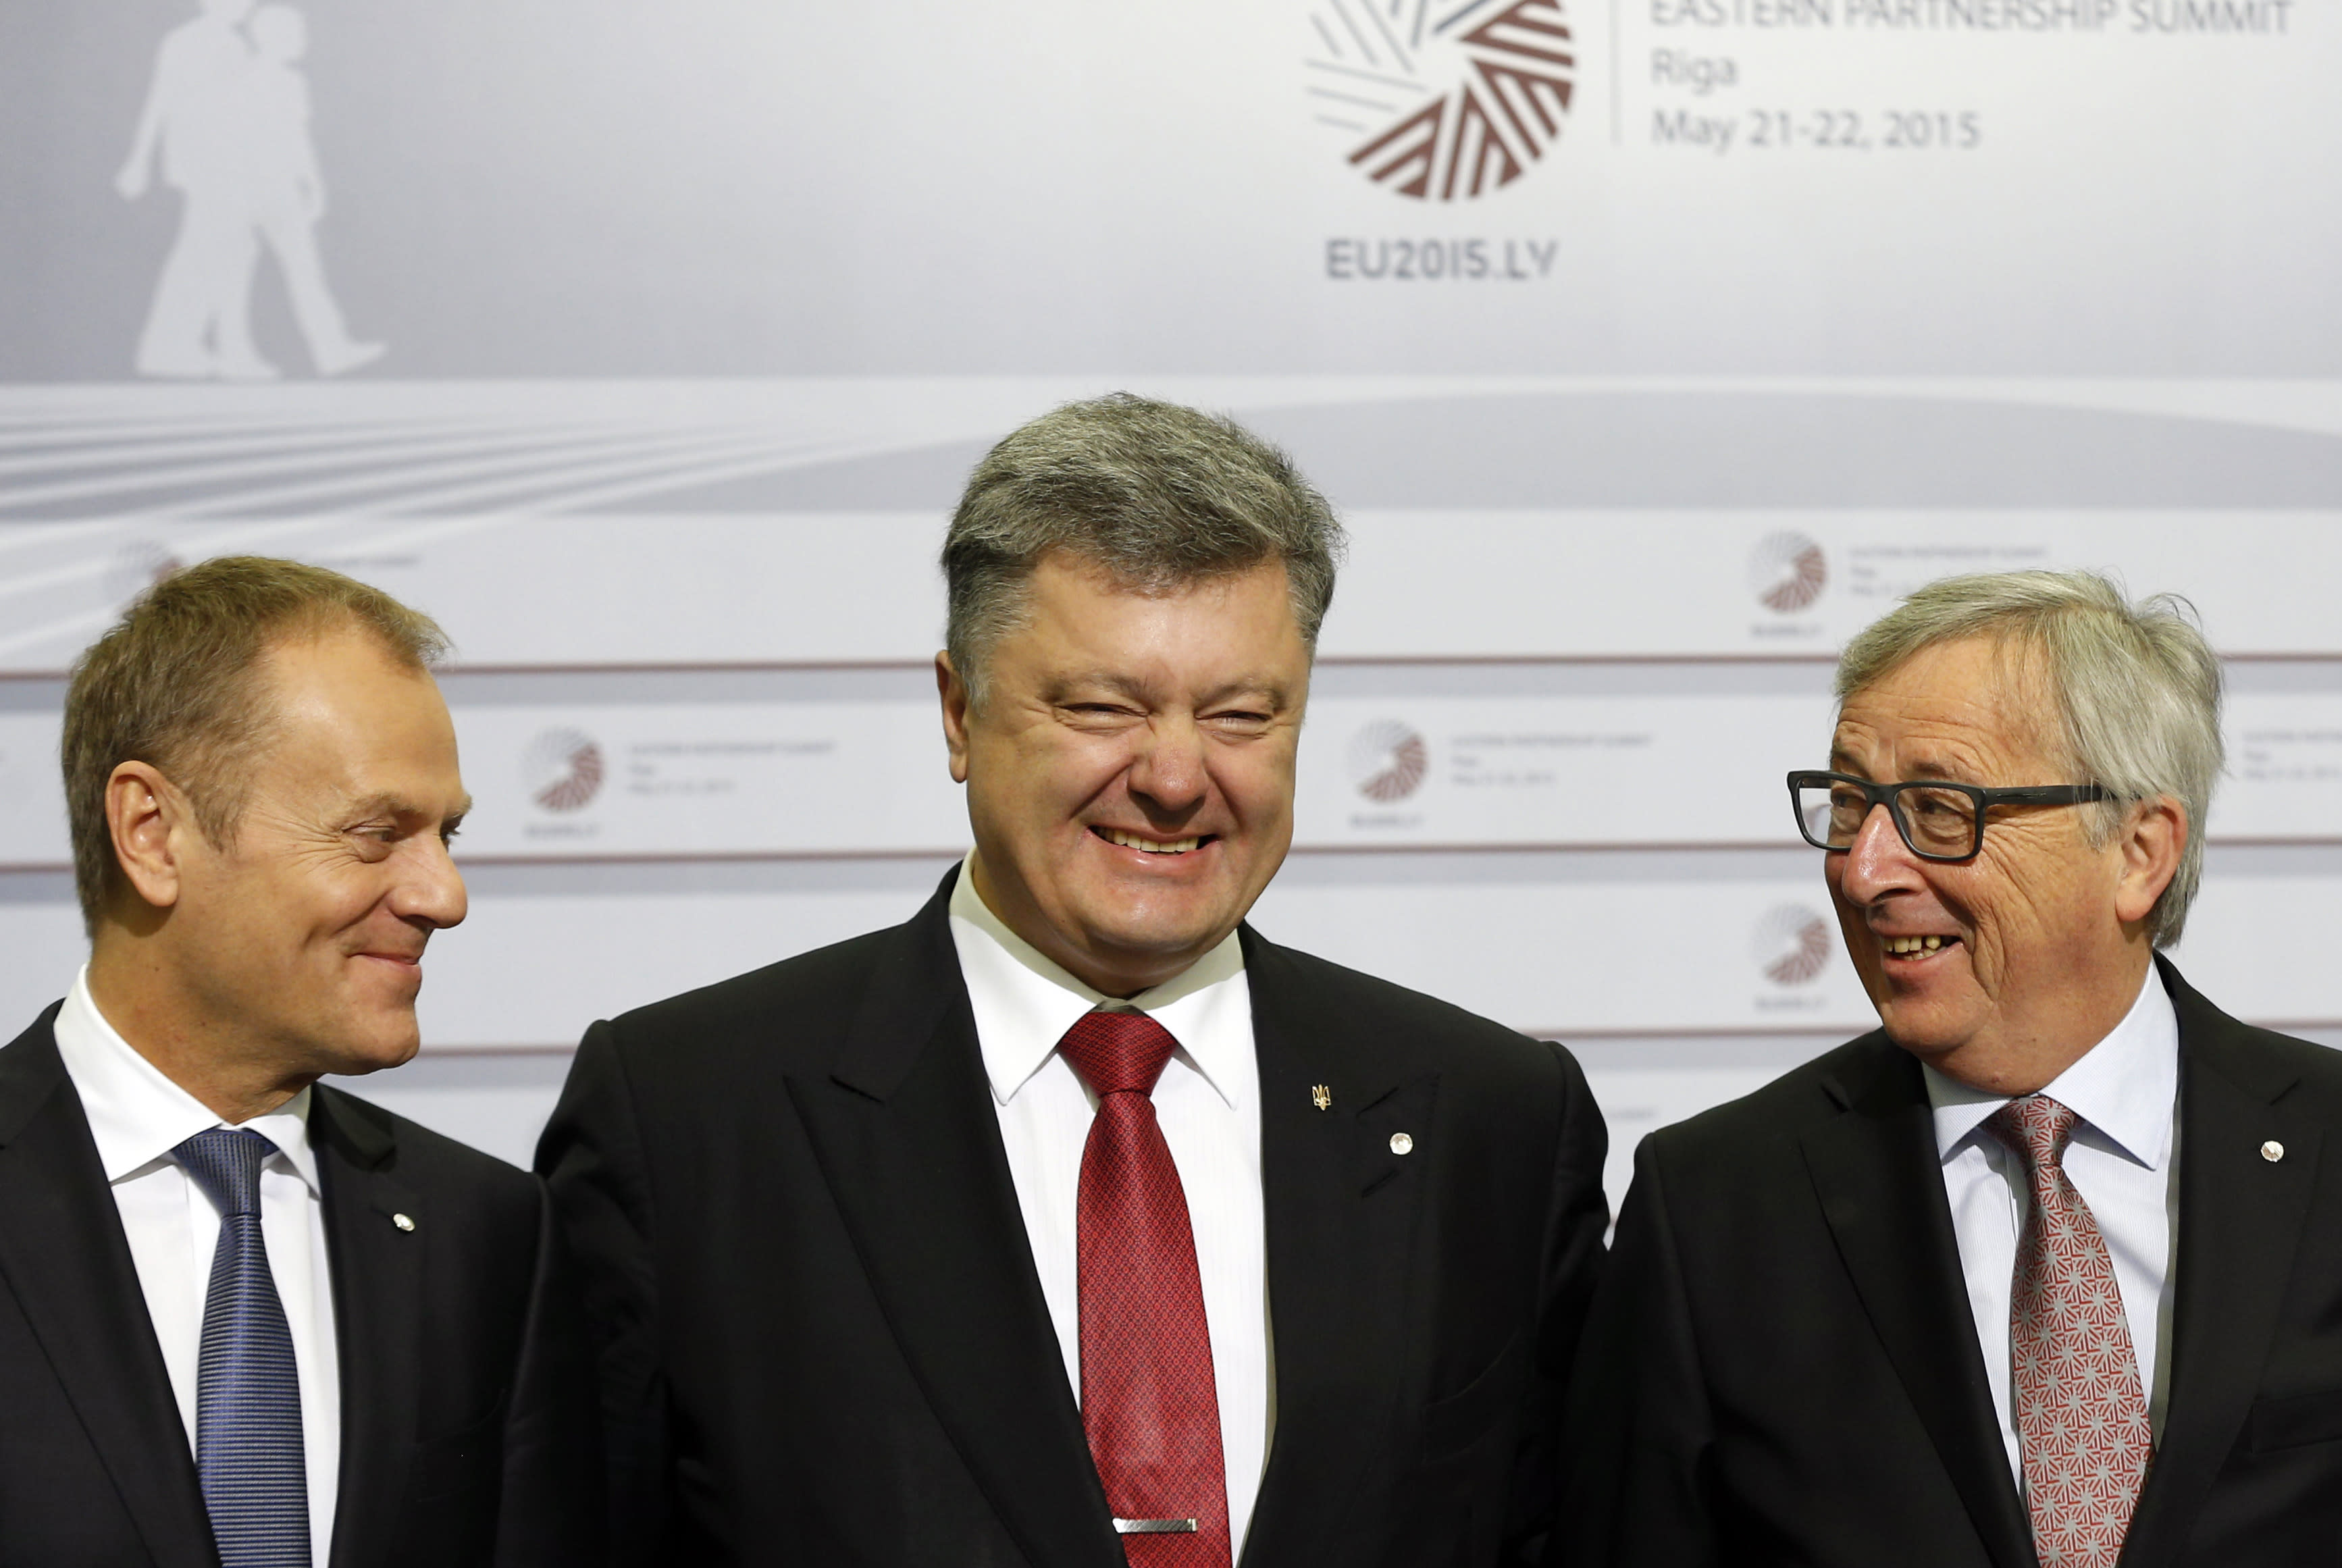 EU, Ukraine sign $2 billion loan deal at Eastern summit